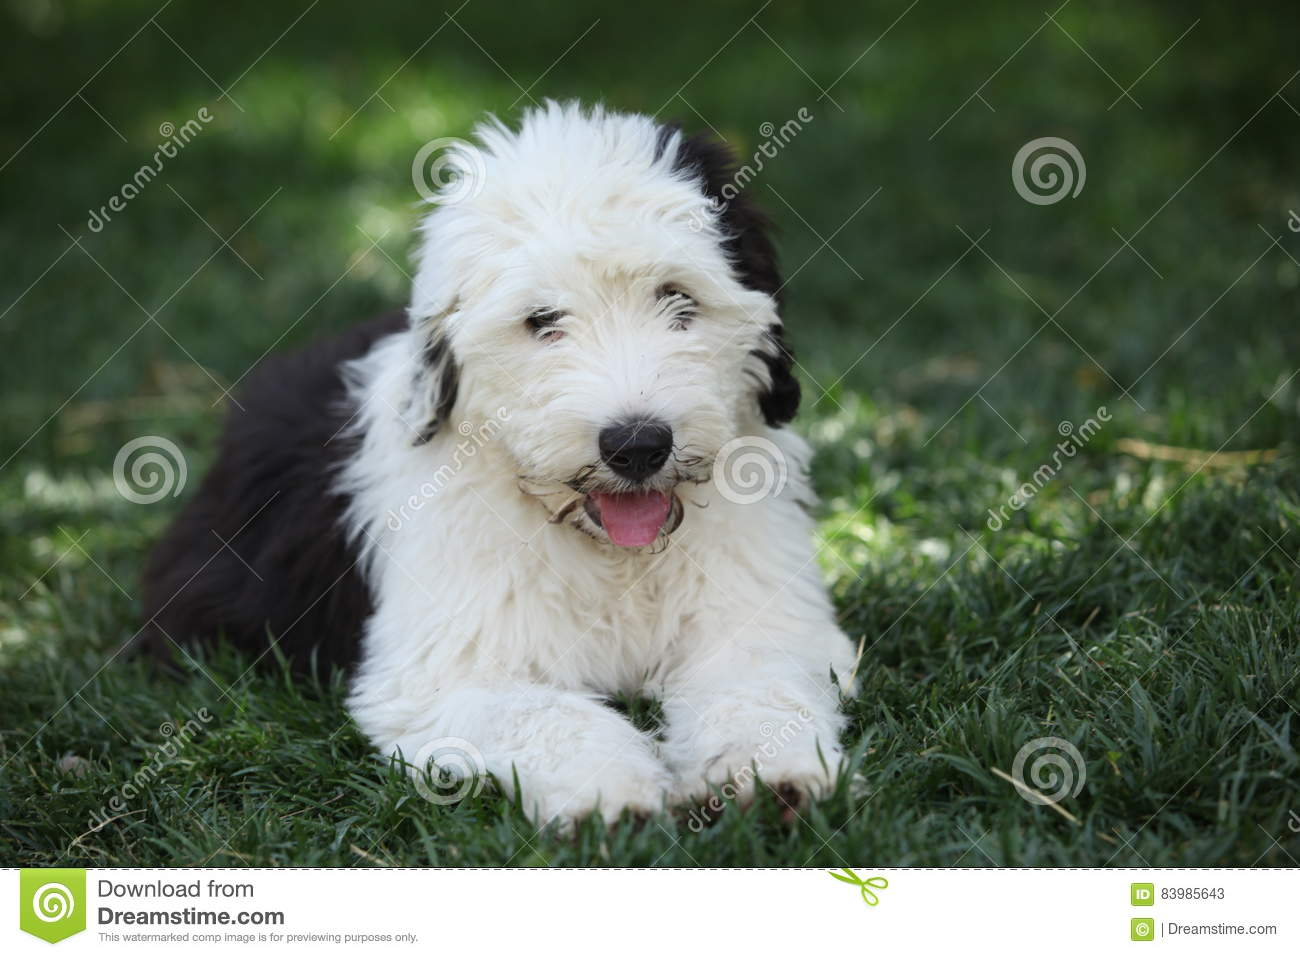 What does a sheepdog dream about